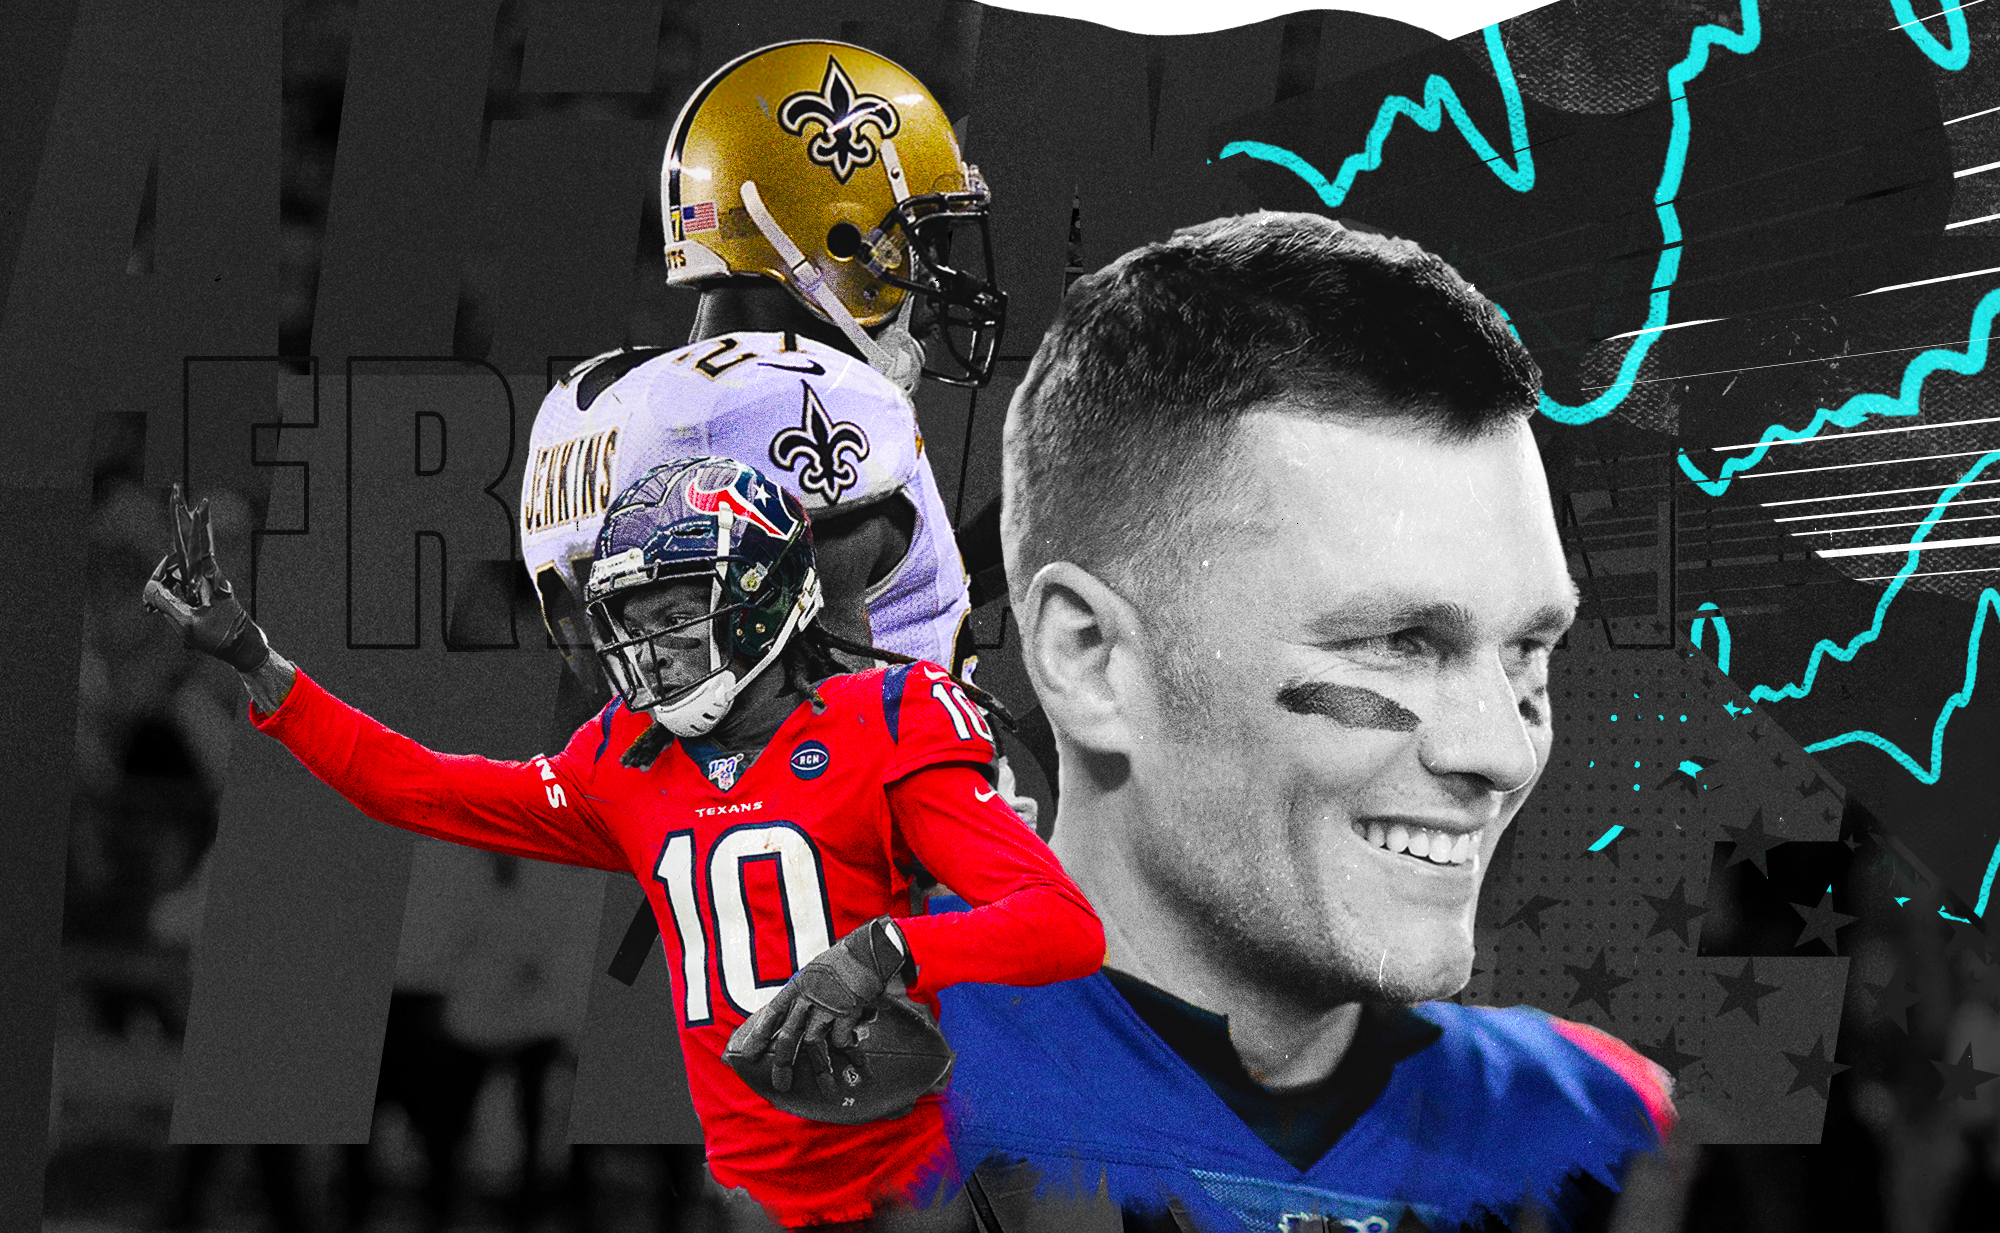 A collage of NFL players Tom Brady, DeAndre Hopkins, and Malcolm Jenkins, superimposed on a black background with aqua squiggly lines.